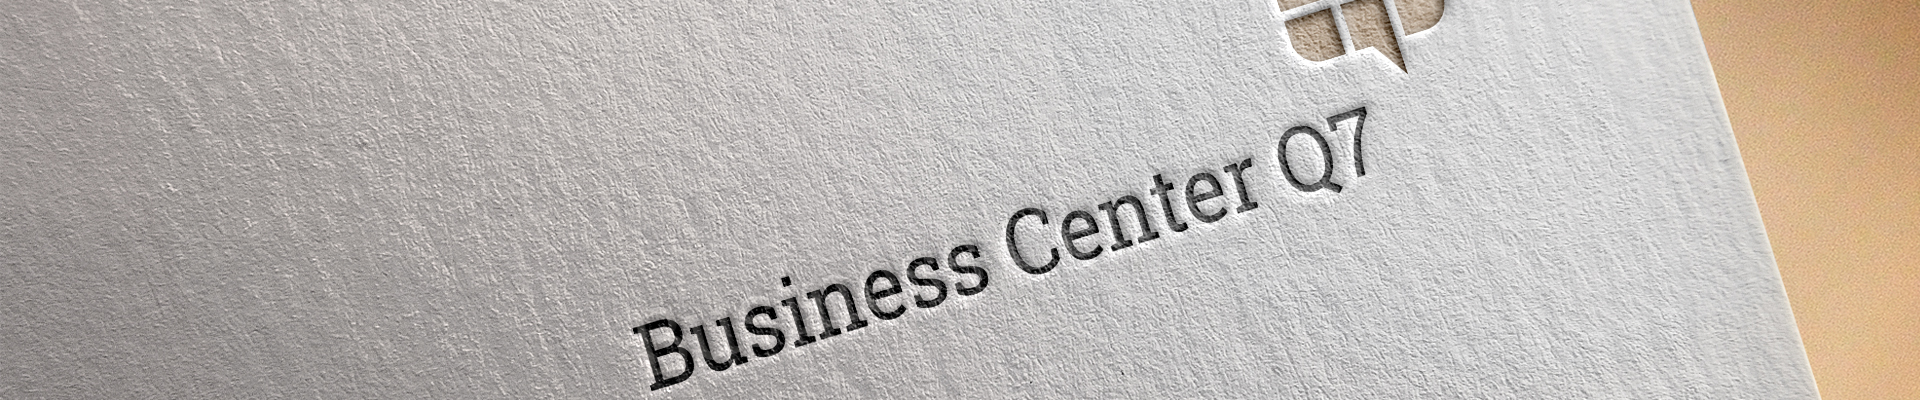 Business Center Logo auf Pappe